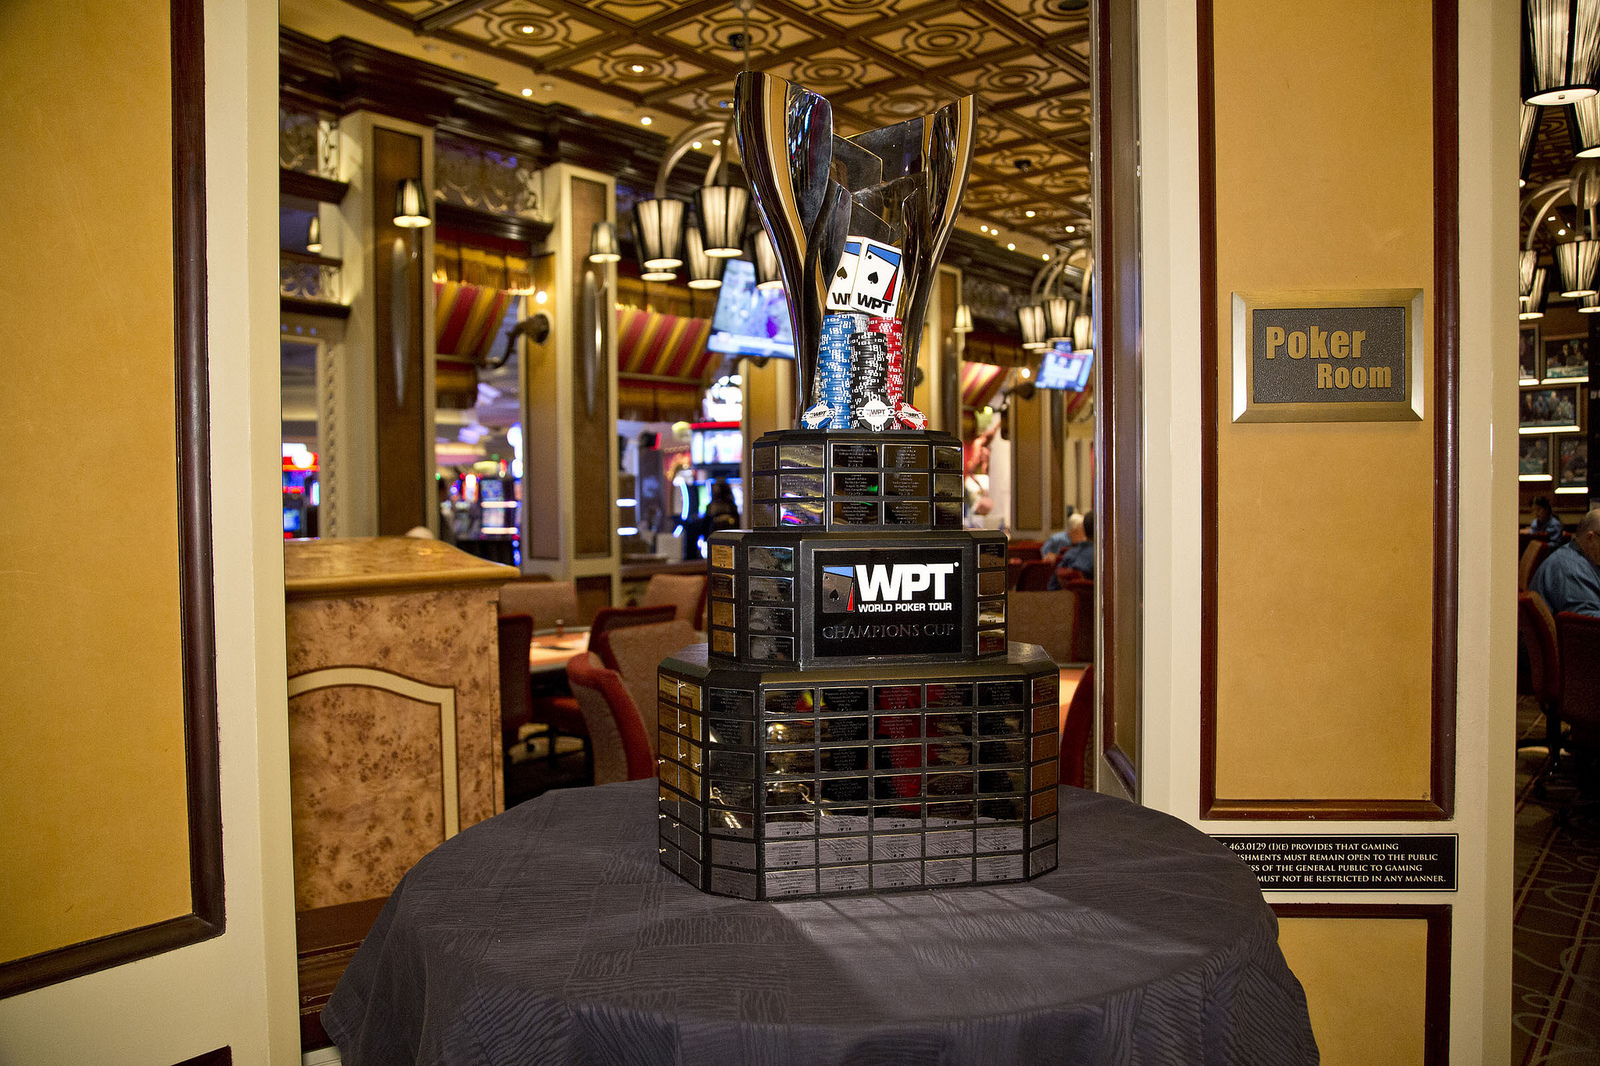 wpt-champions-cup